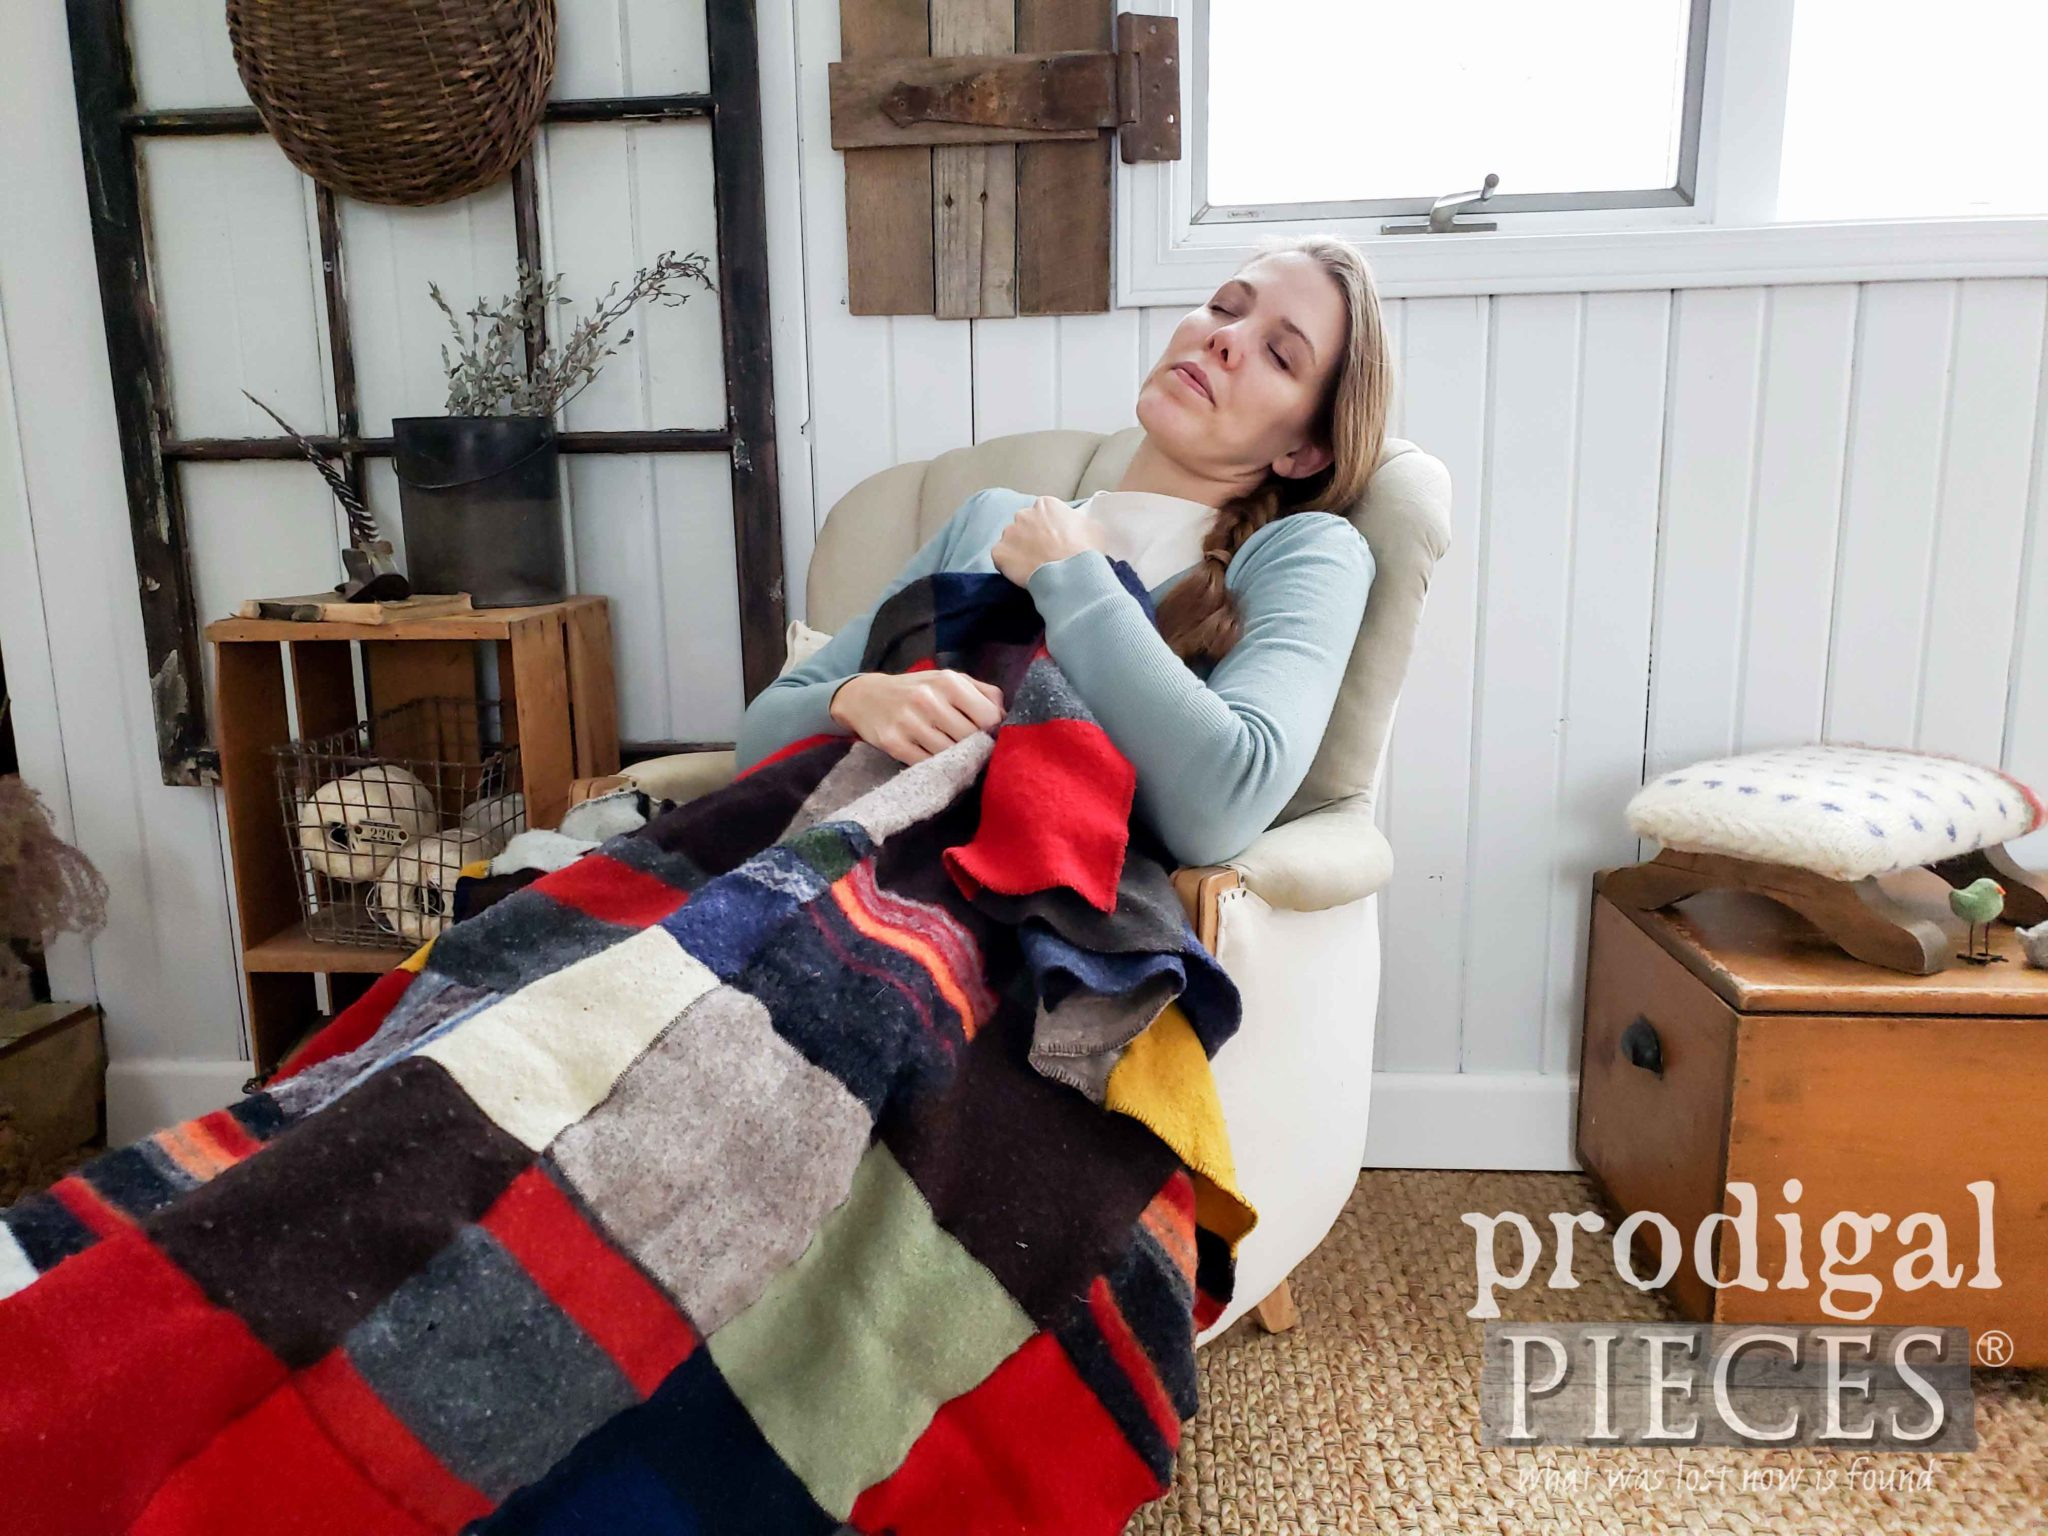 Larissa of Prodigal Pieces Cuddles Up in a Felted Wool Blanket from Thrifted Sweaters | DIY at prodigalpieces.com #prodigalpieces #diy #handmade #home #homedecor #homedecorideas